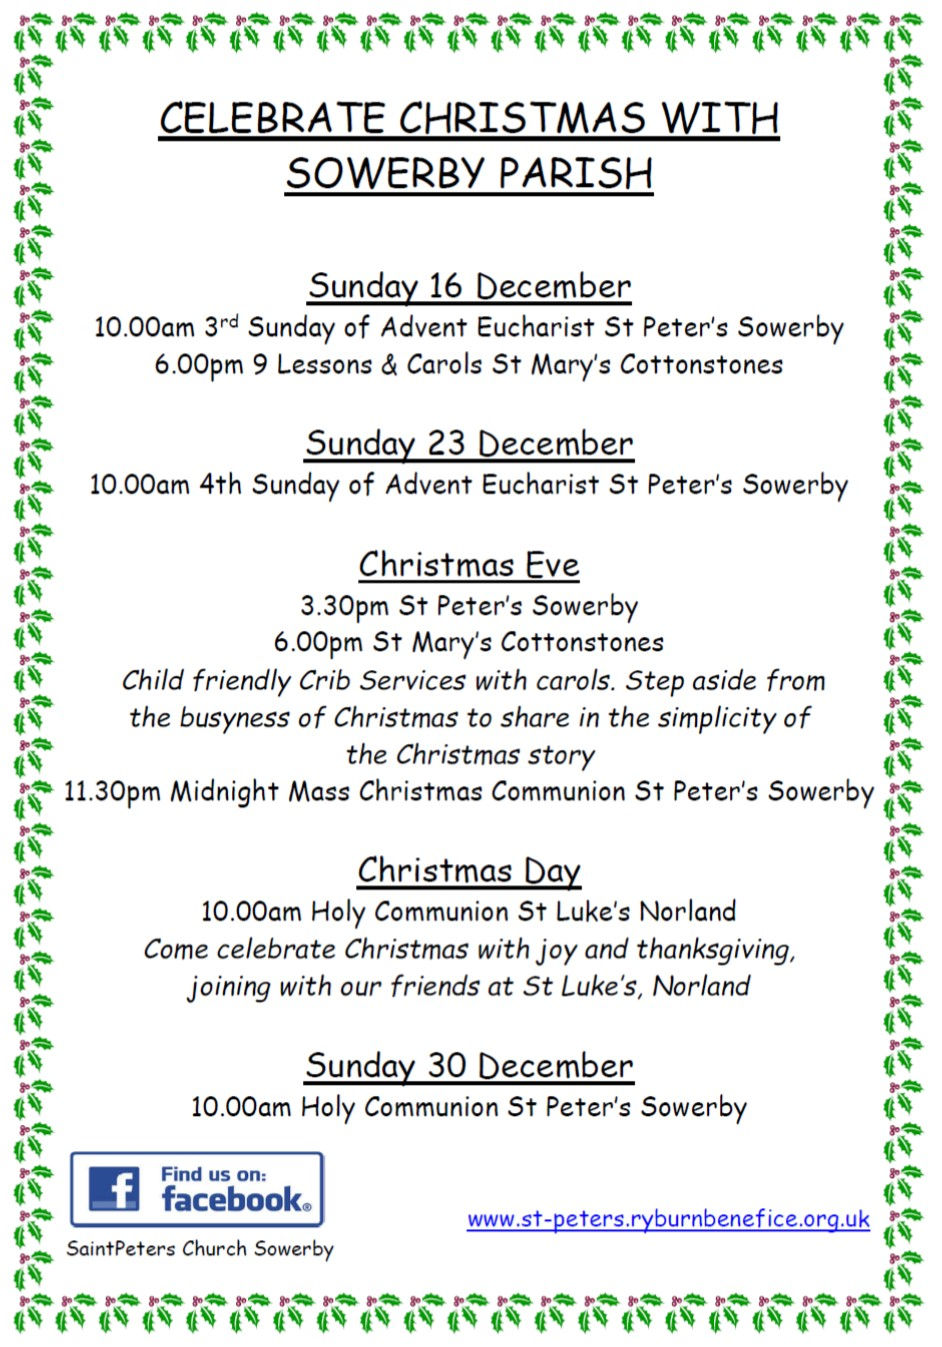 Celebrate Christmas in Sowerby 2018